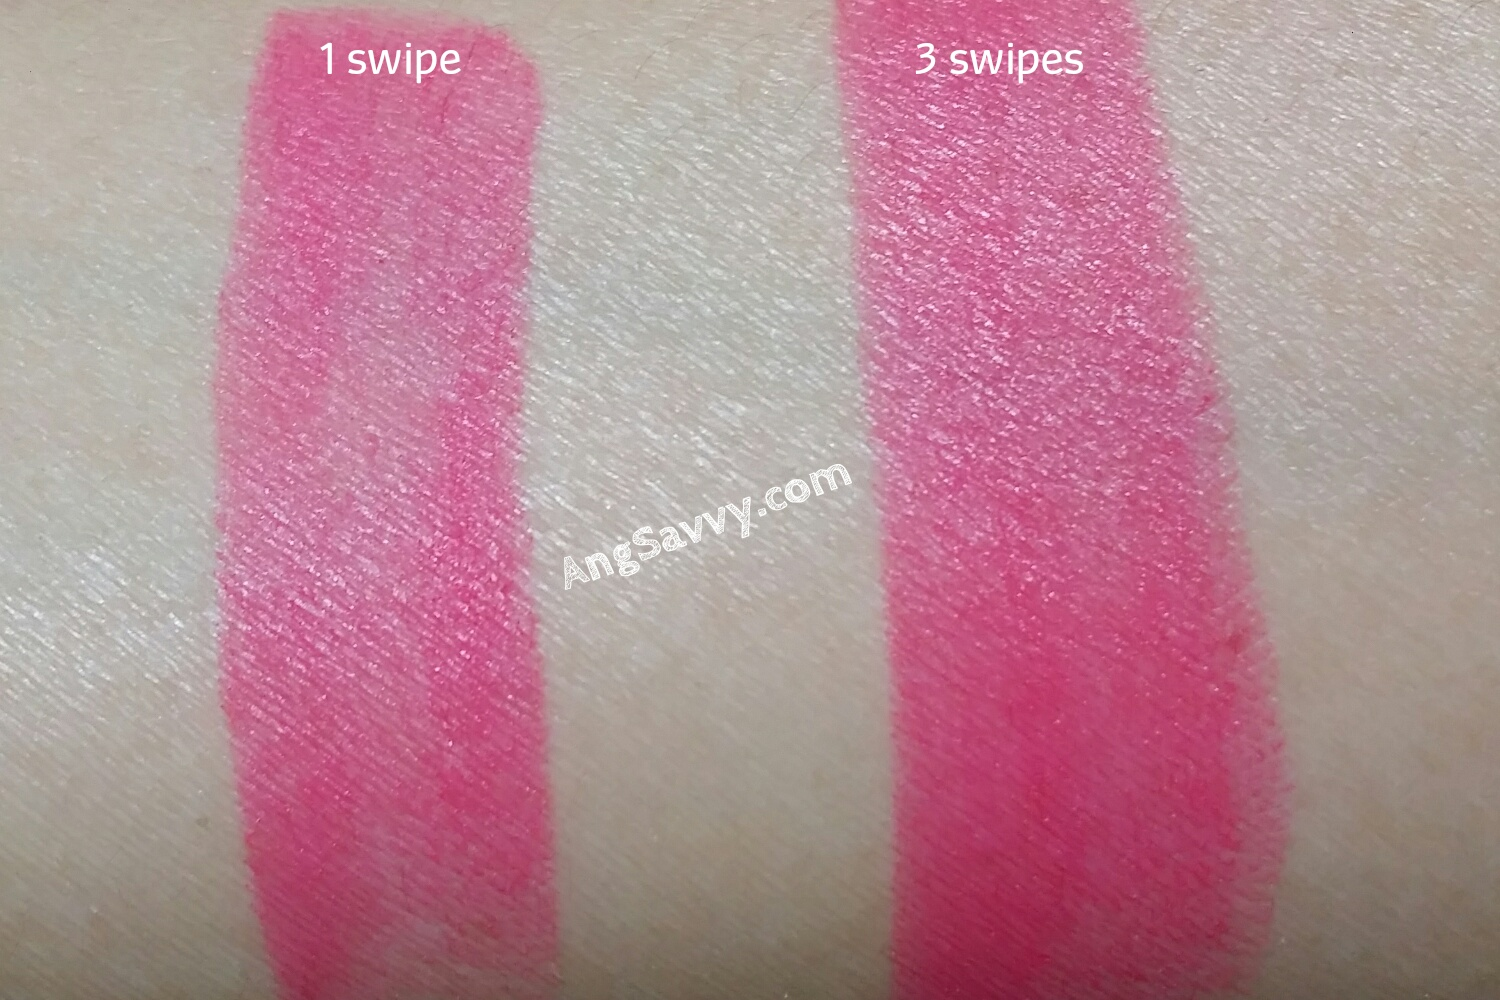 Maybelline Color Sensational Bold Matte MAT 1 Lipstick Swatch